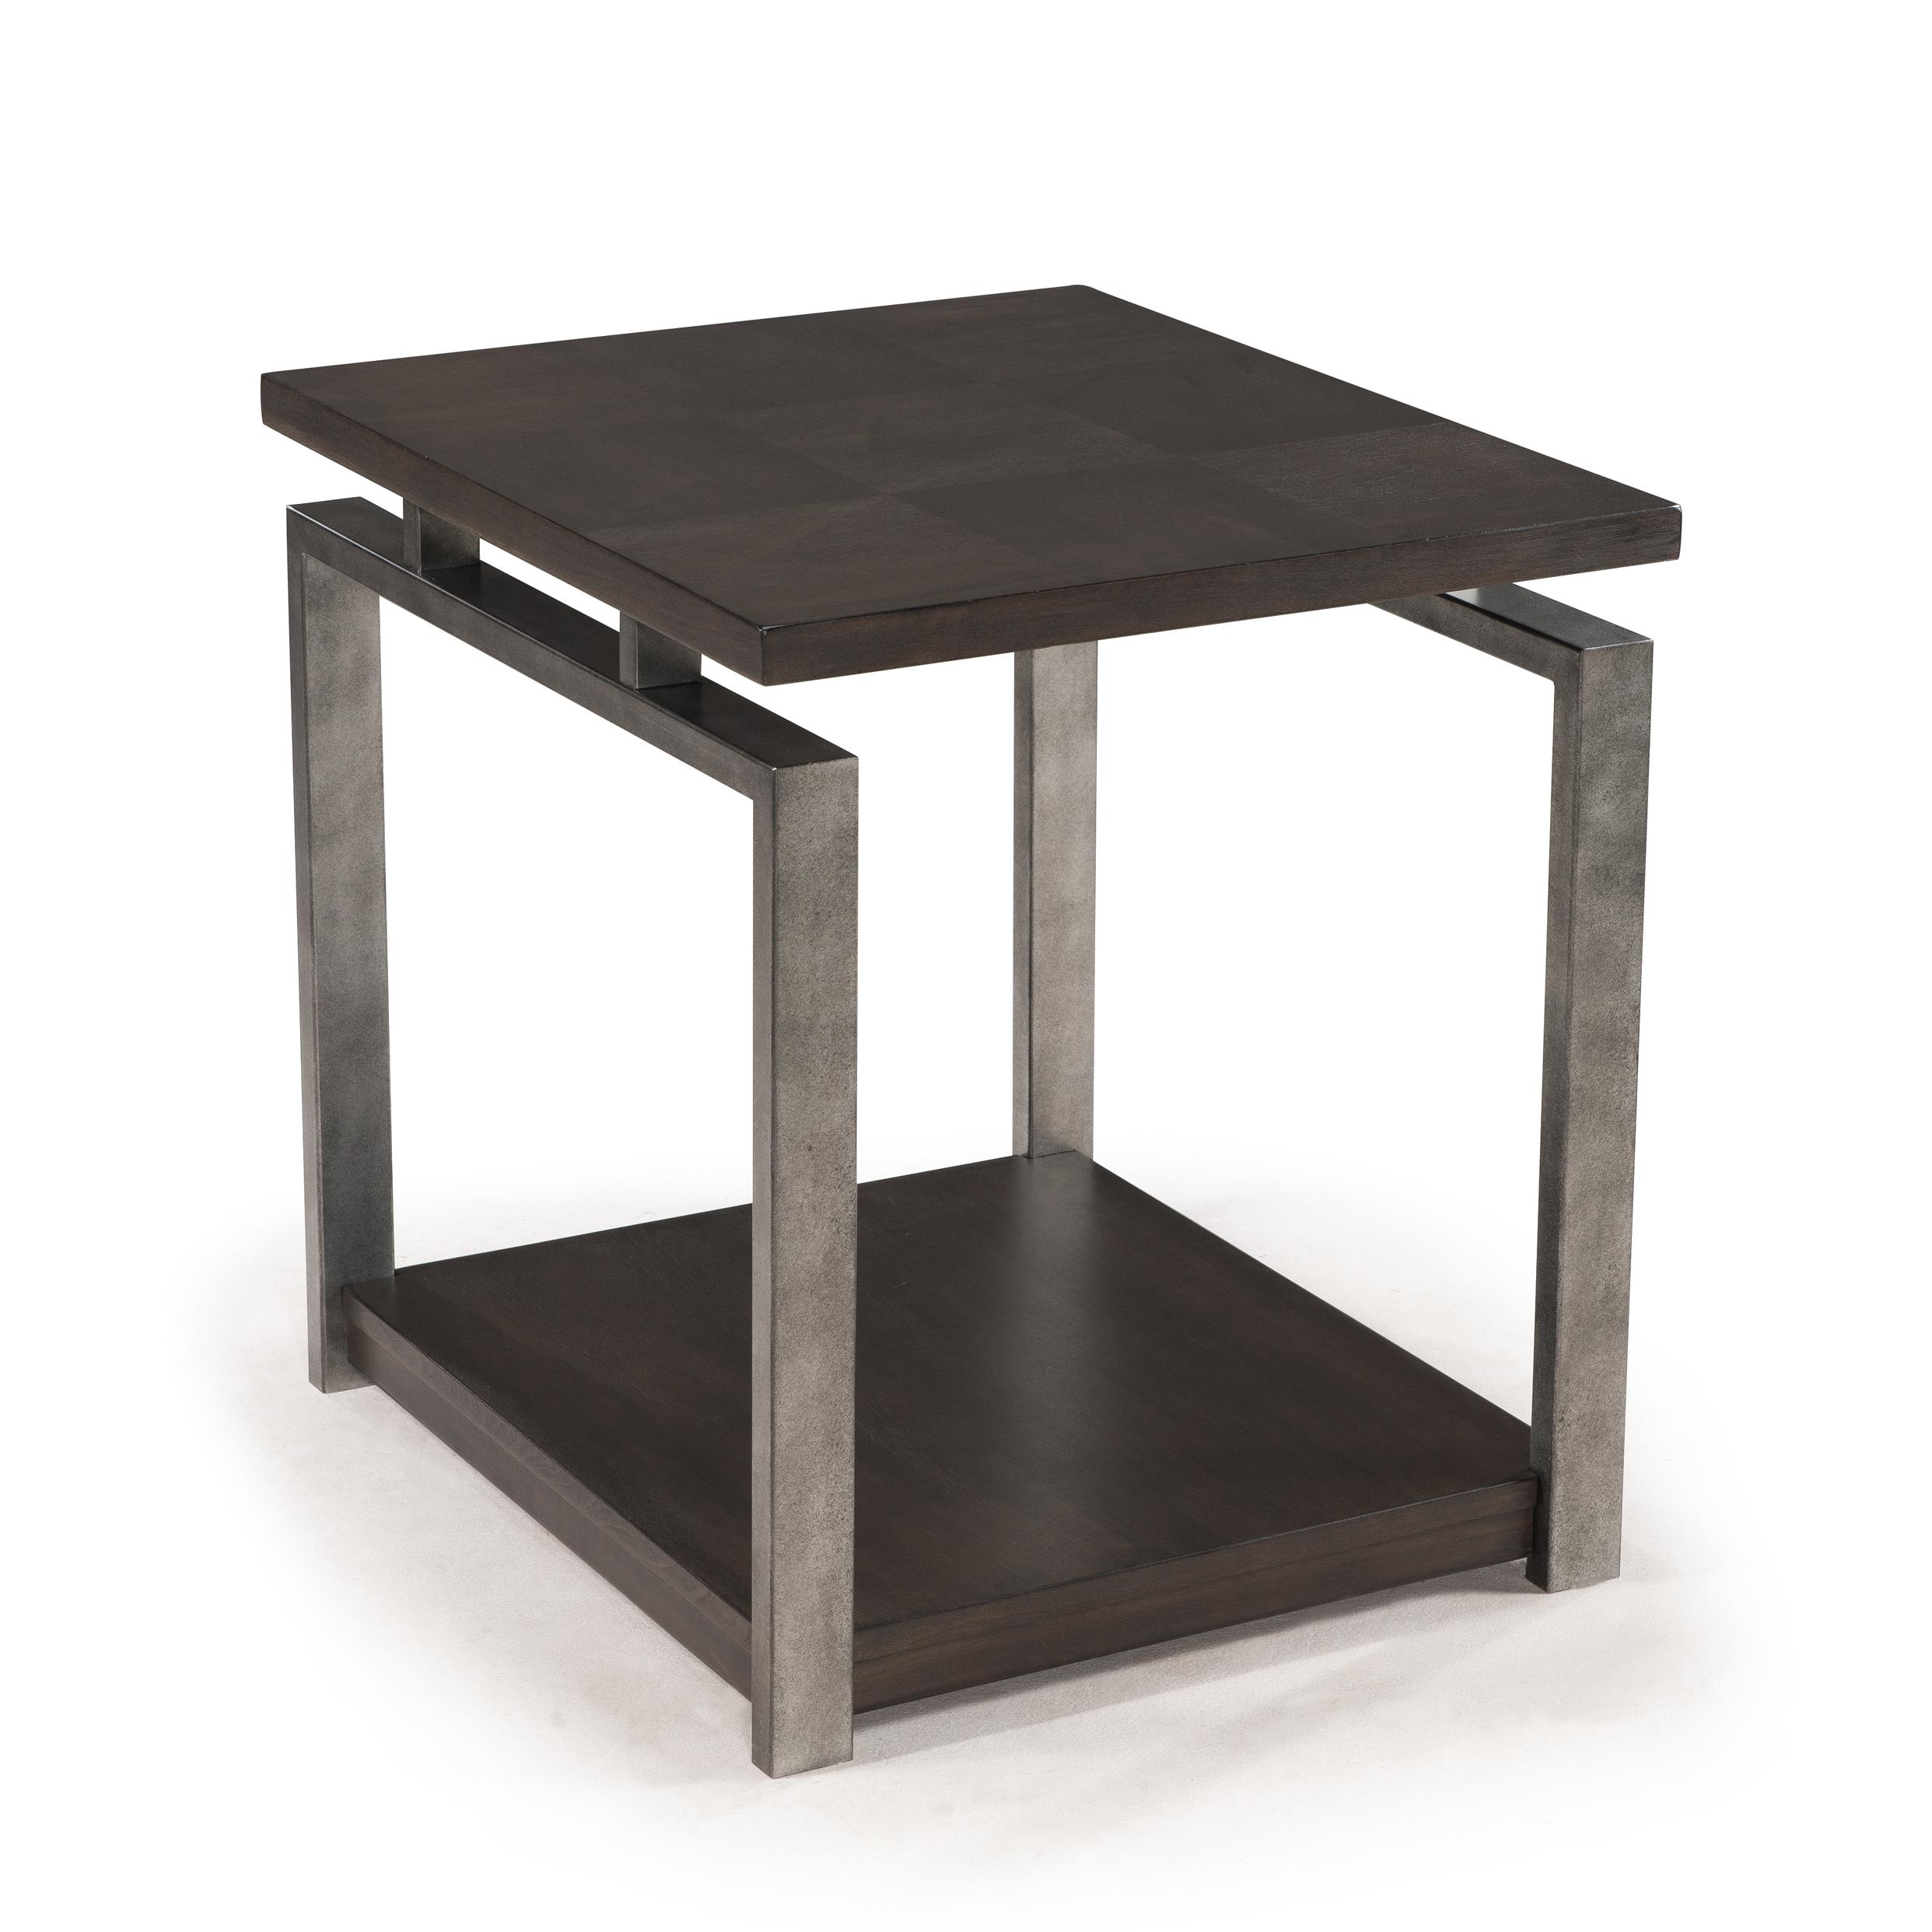 Morris Home Furnishings Flatstone Flatstone Rectangular End Table - Item Number: T2535-03